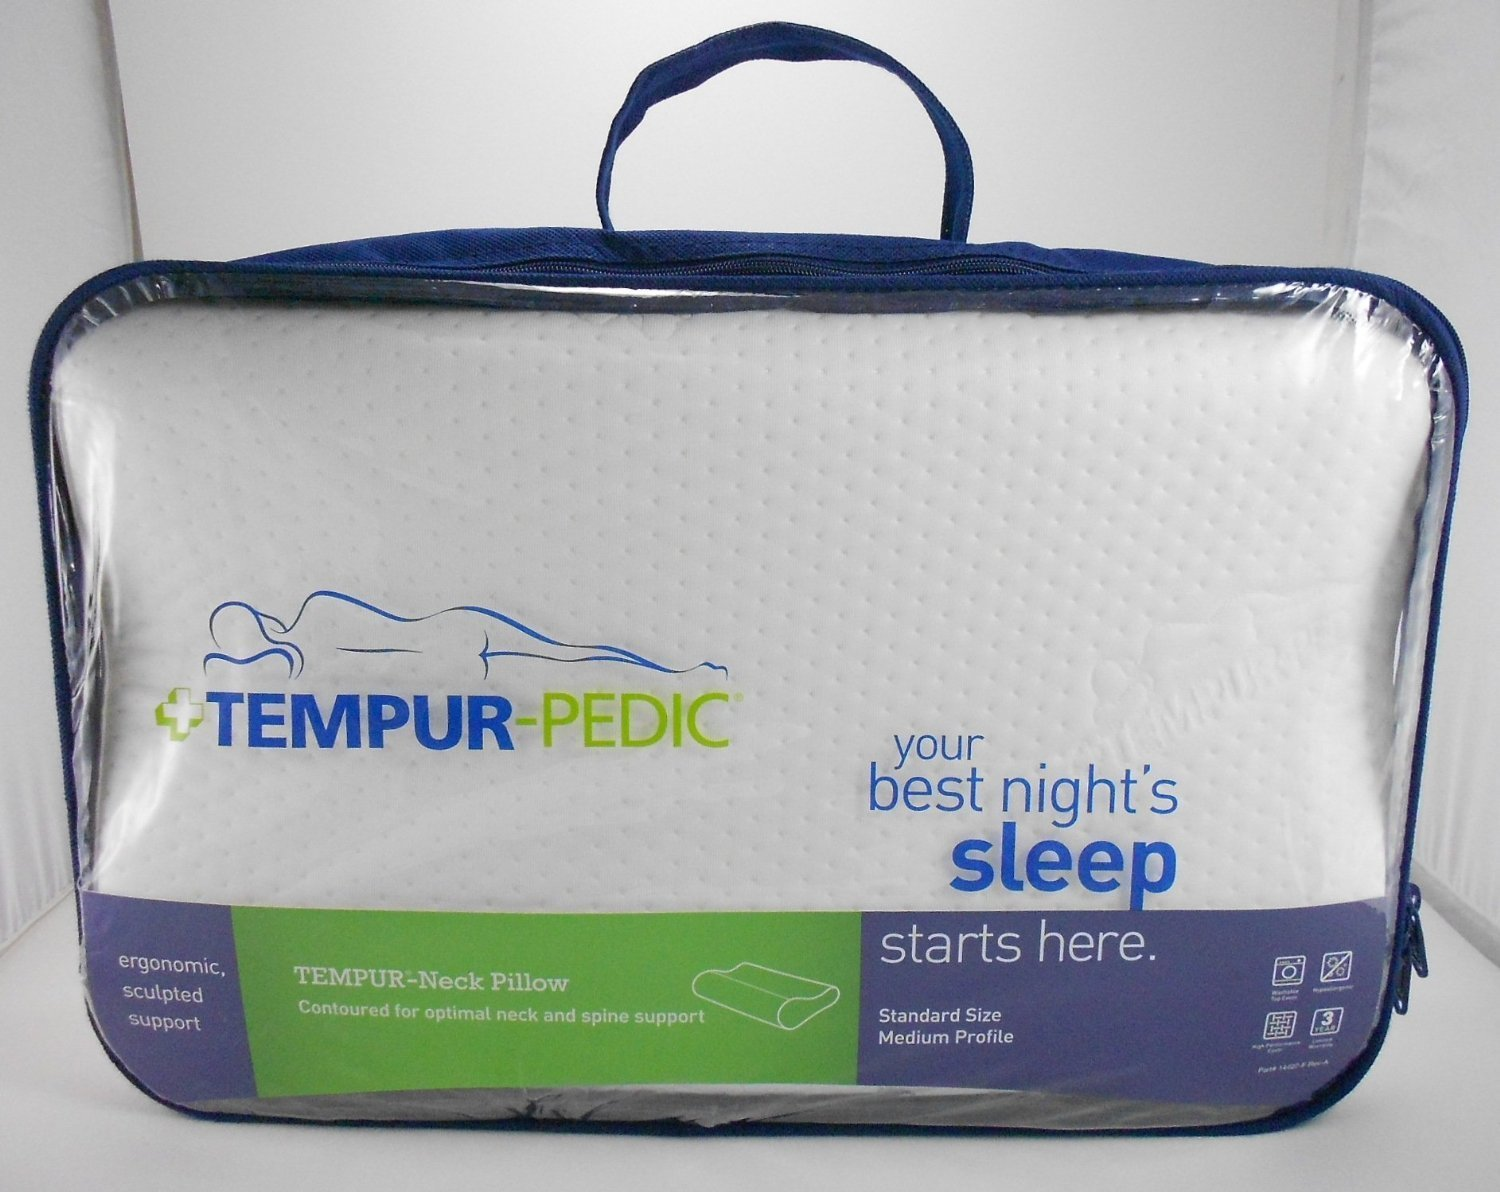 Tempurpedic Neck Pillow Travel